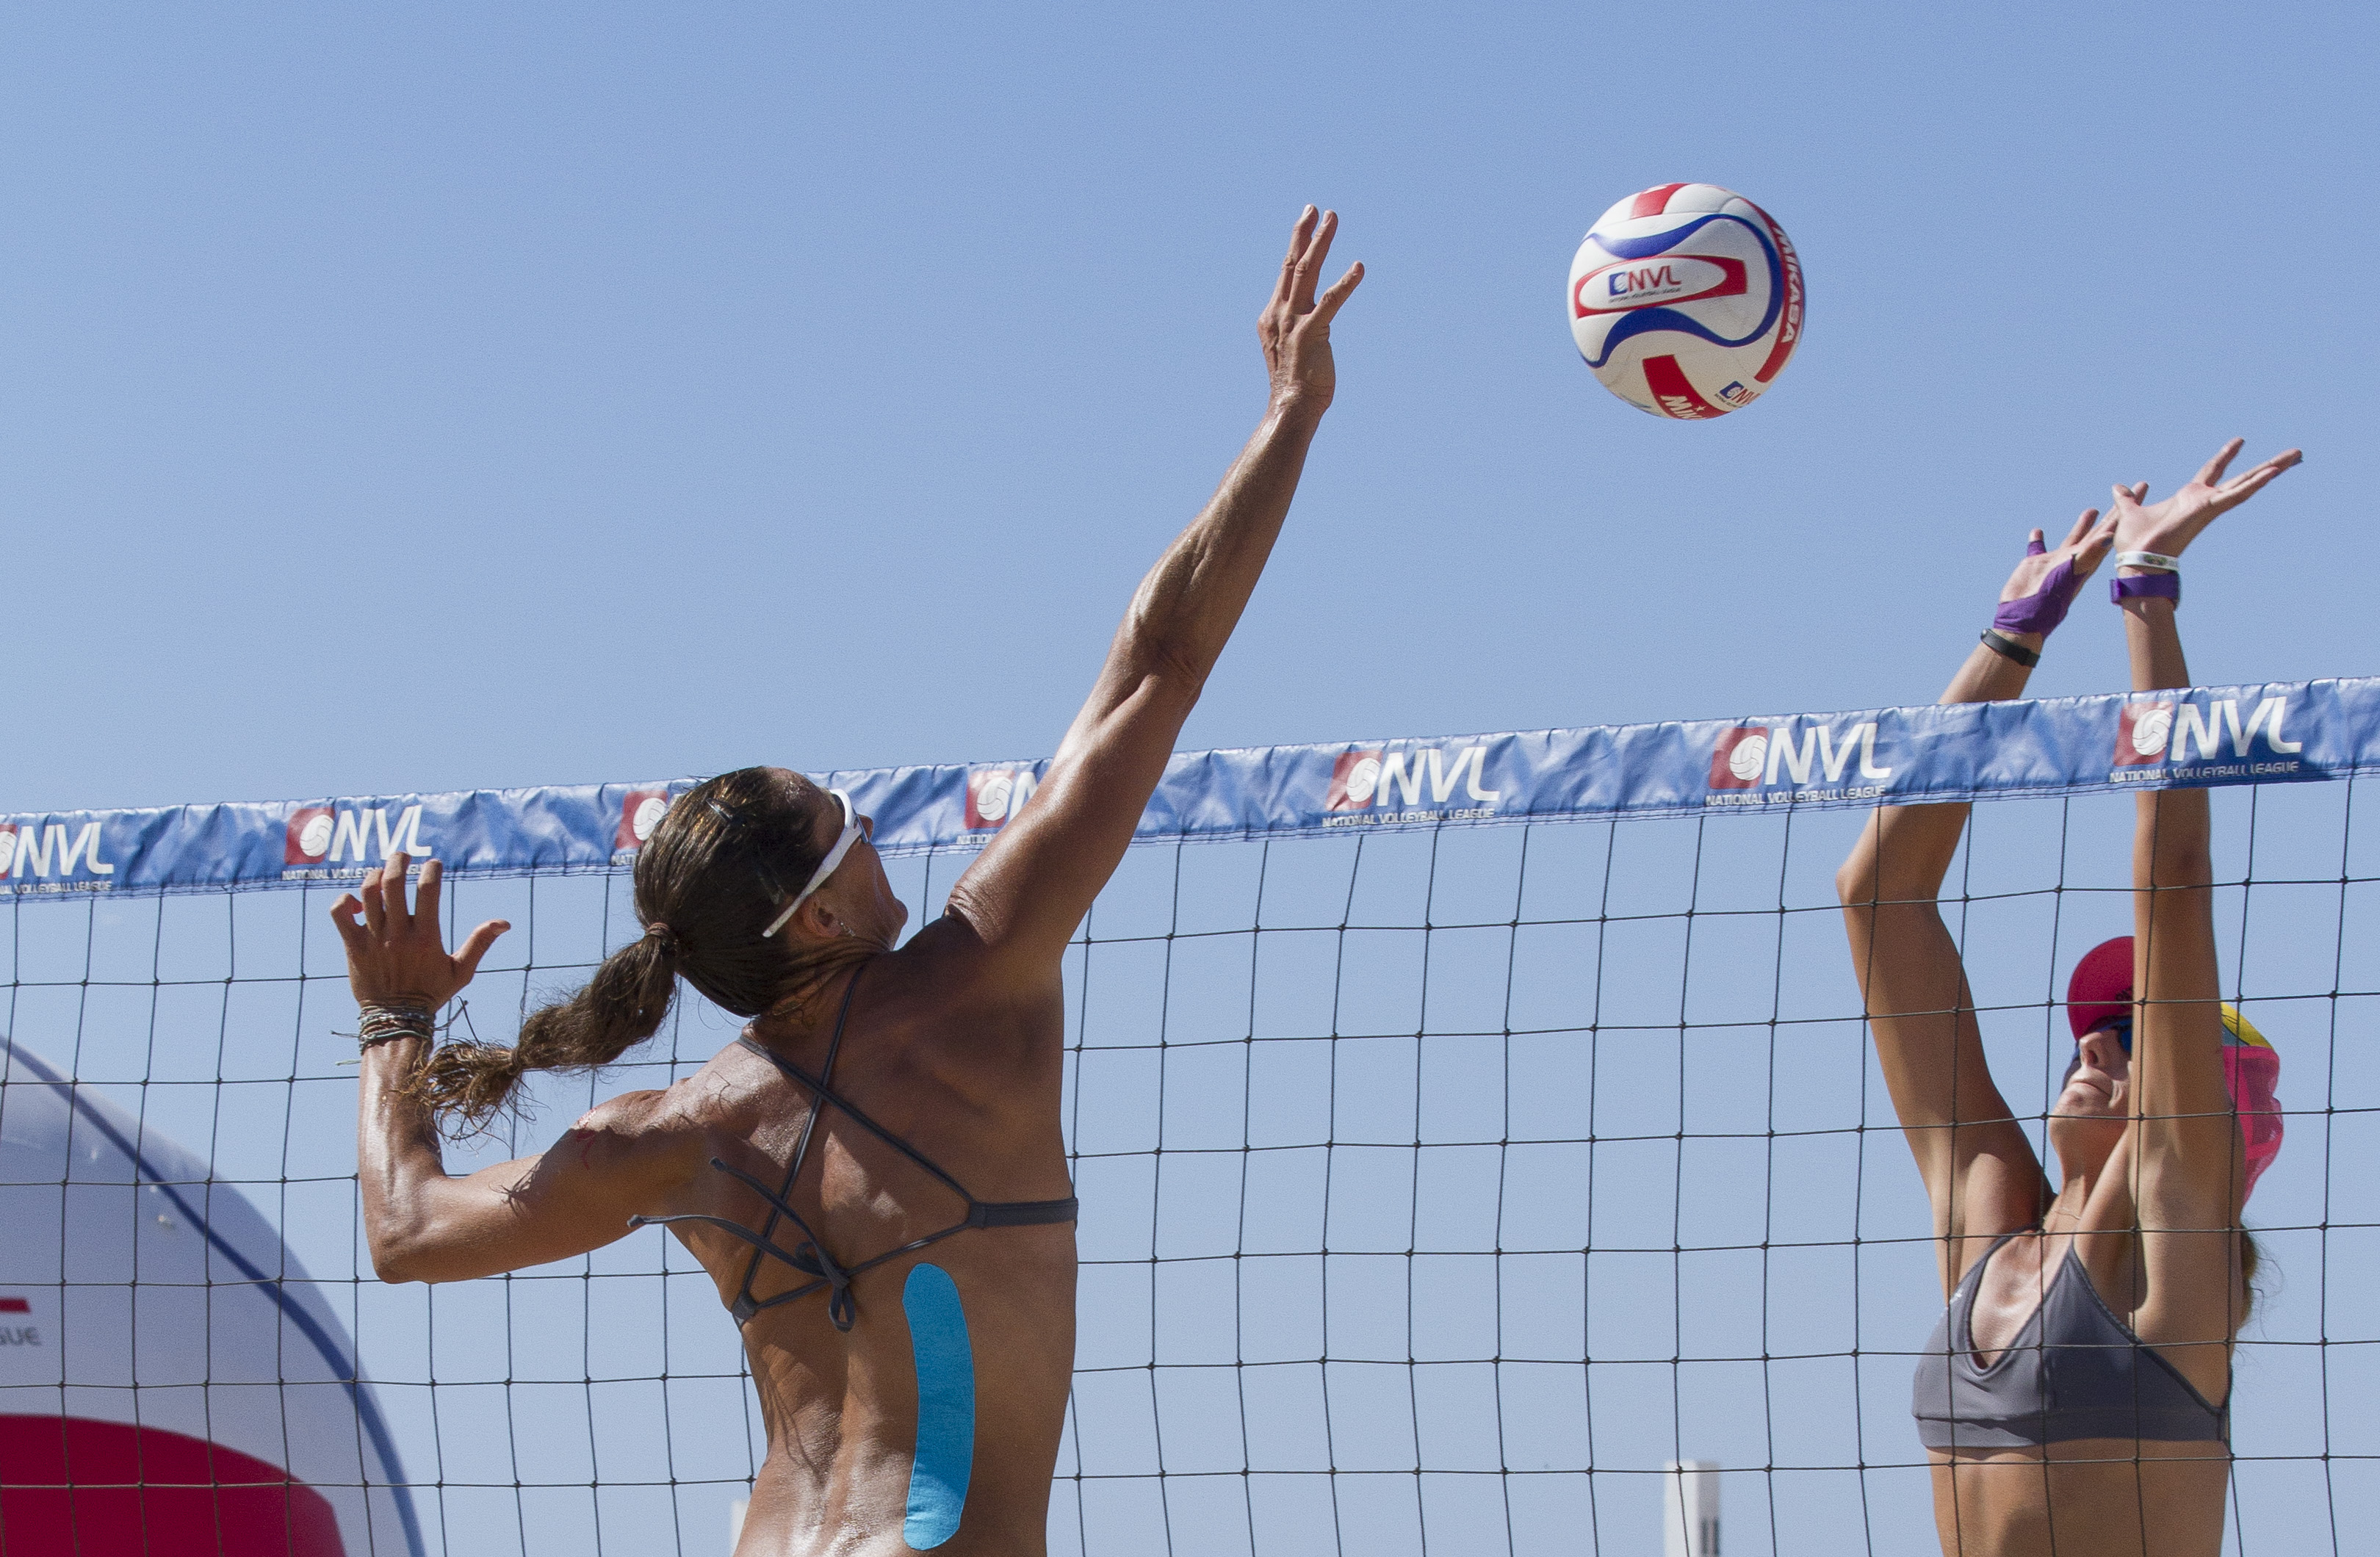 National Volleyball League Announces First Pro Tour Stop of 2015 Season